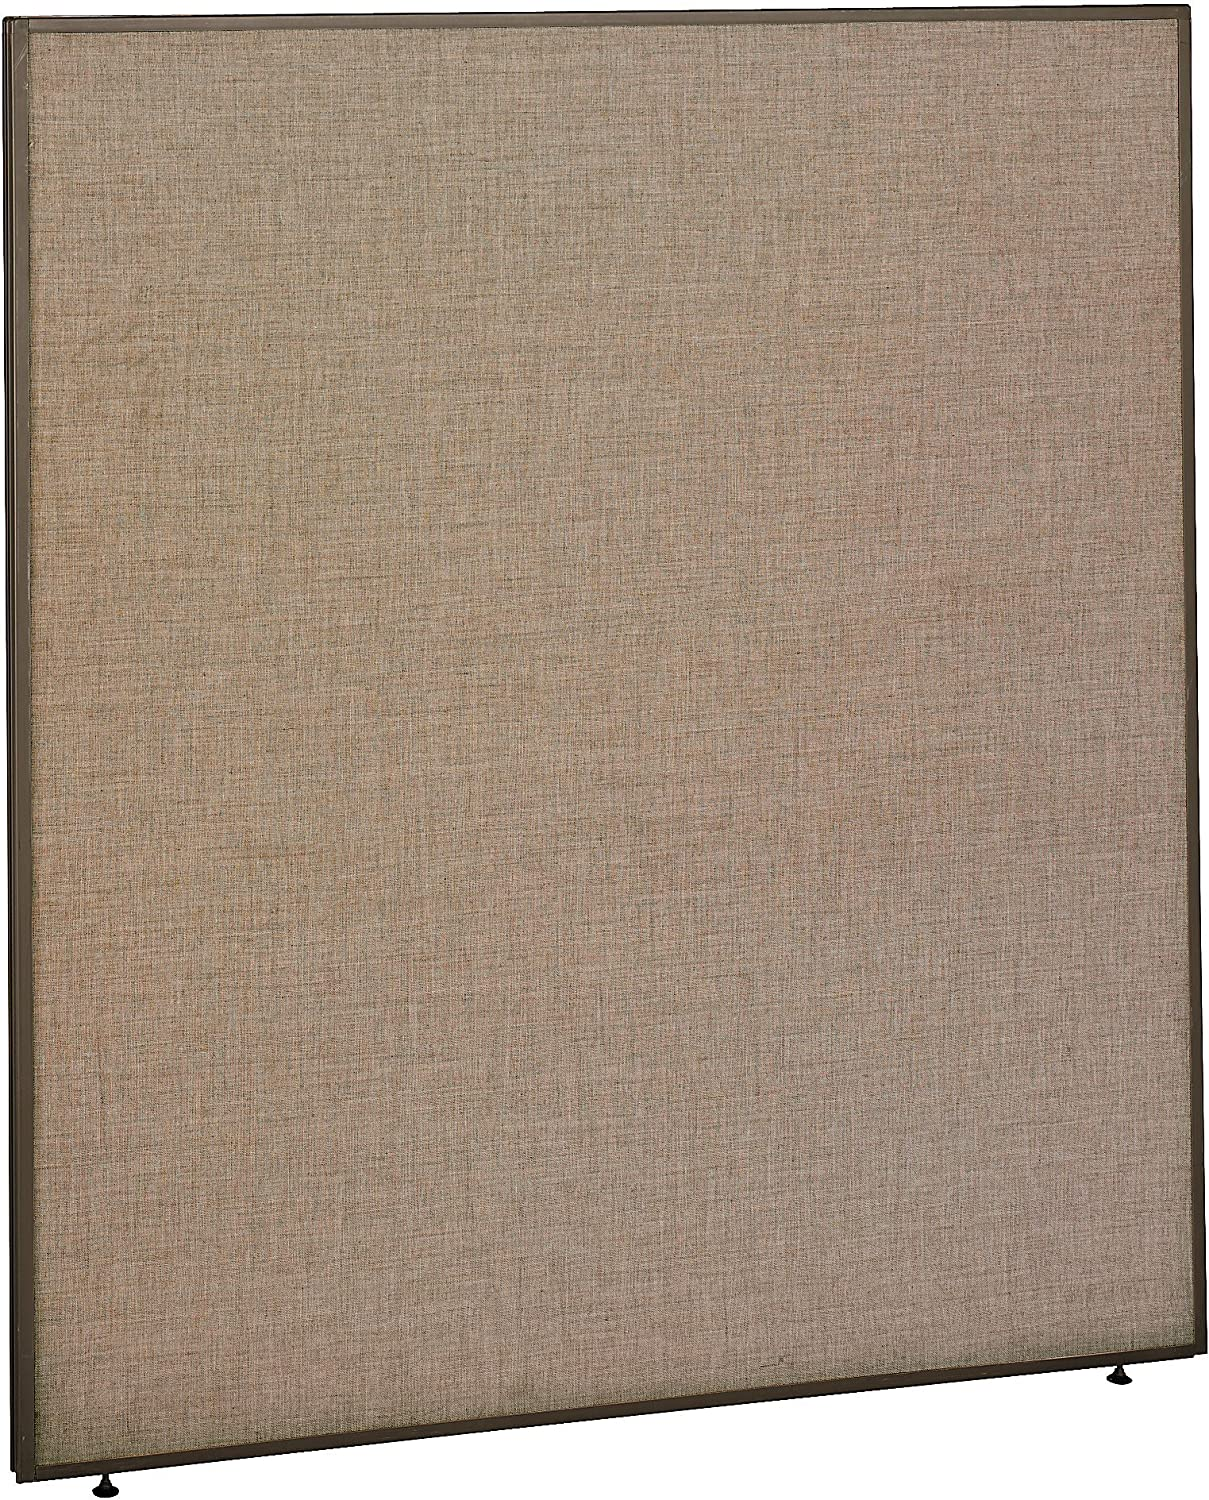 B000W8HXBO Bush Business Furniture ProPanels - 66H x 60W Panel in Harvest Tan A1XAes11S2L.SL1500_